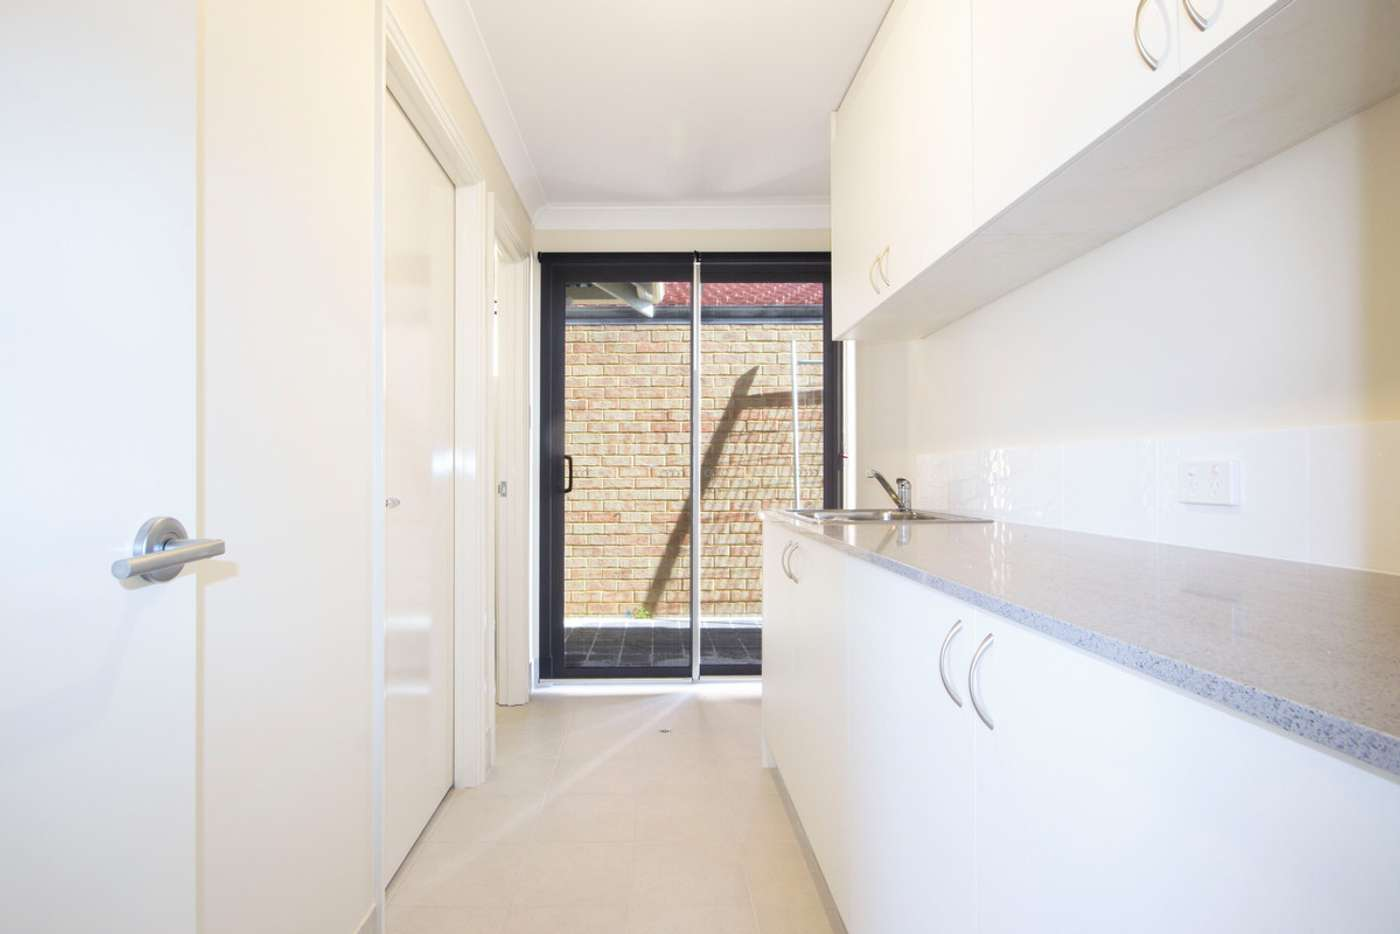 Sixth view of Homely townhouse listing, 3/38 Broadway, Bassendean WA 6054